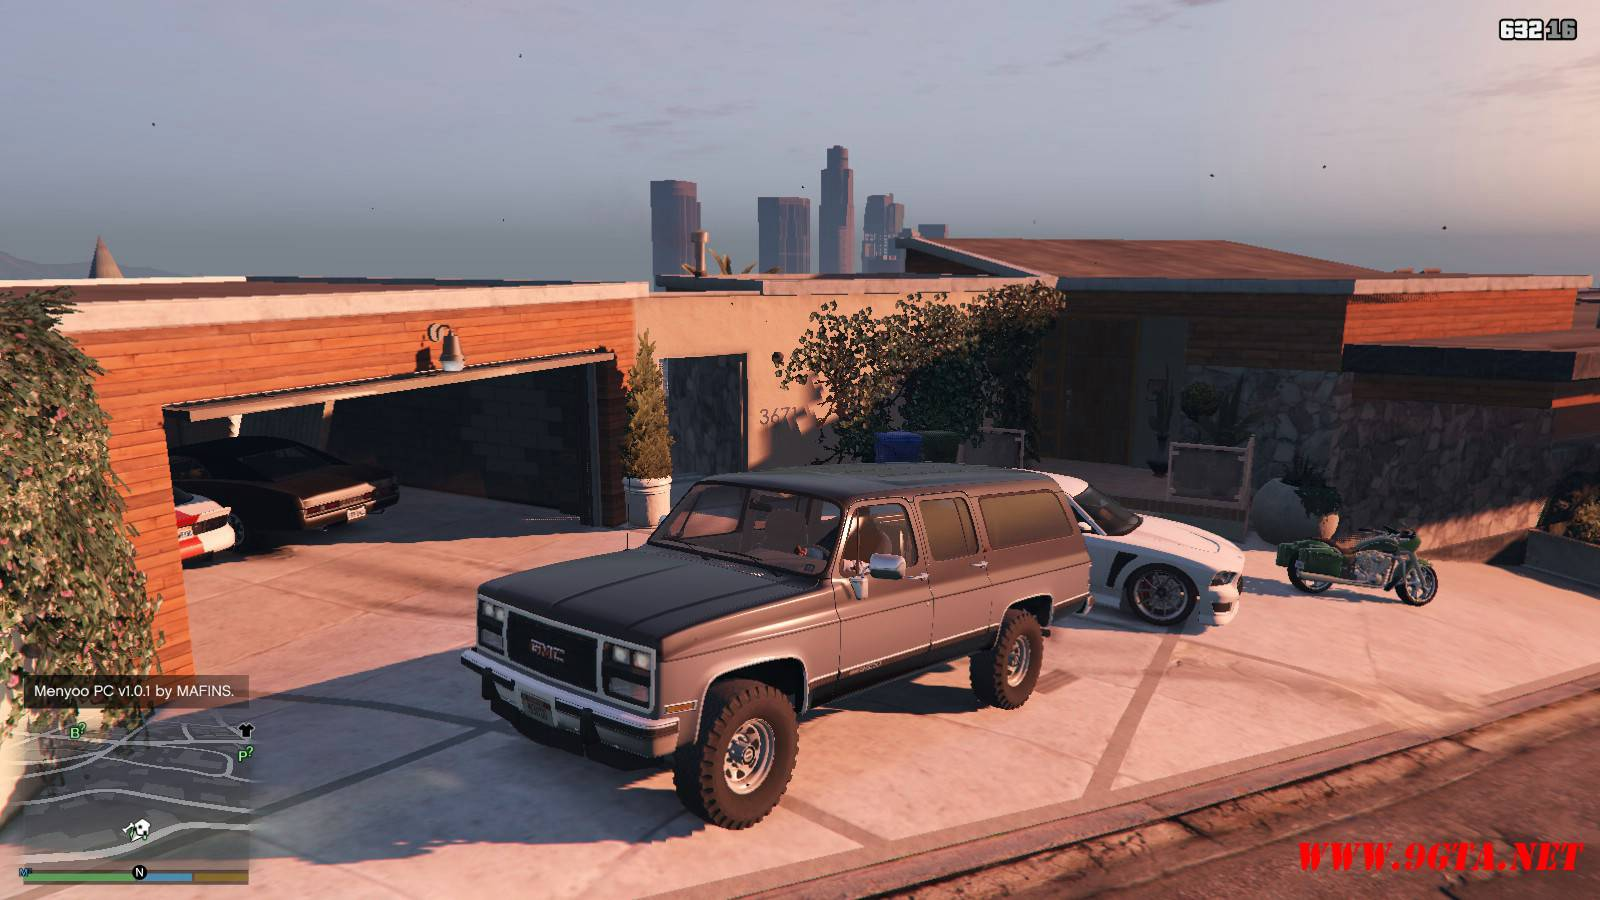 1989 GMC Suburban Mod For GTA 5 (1)